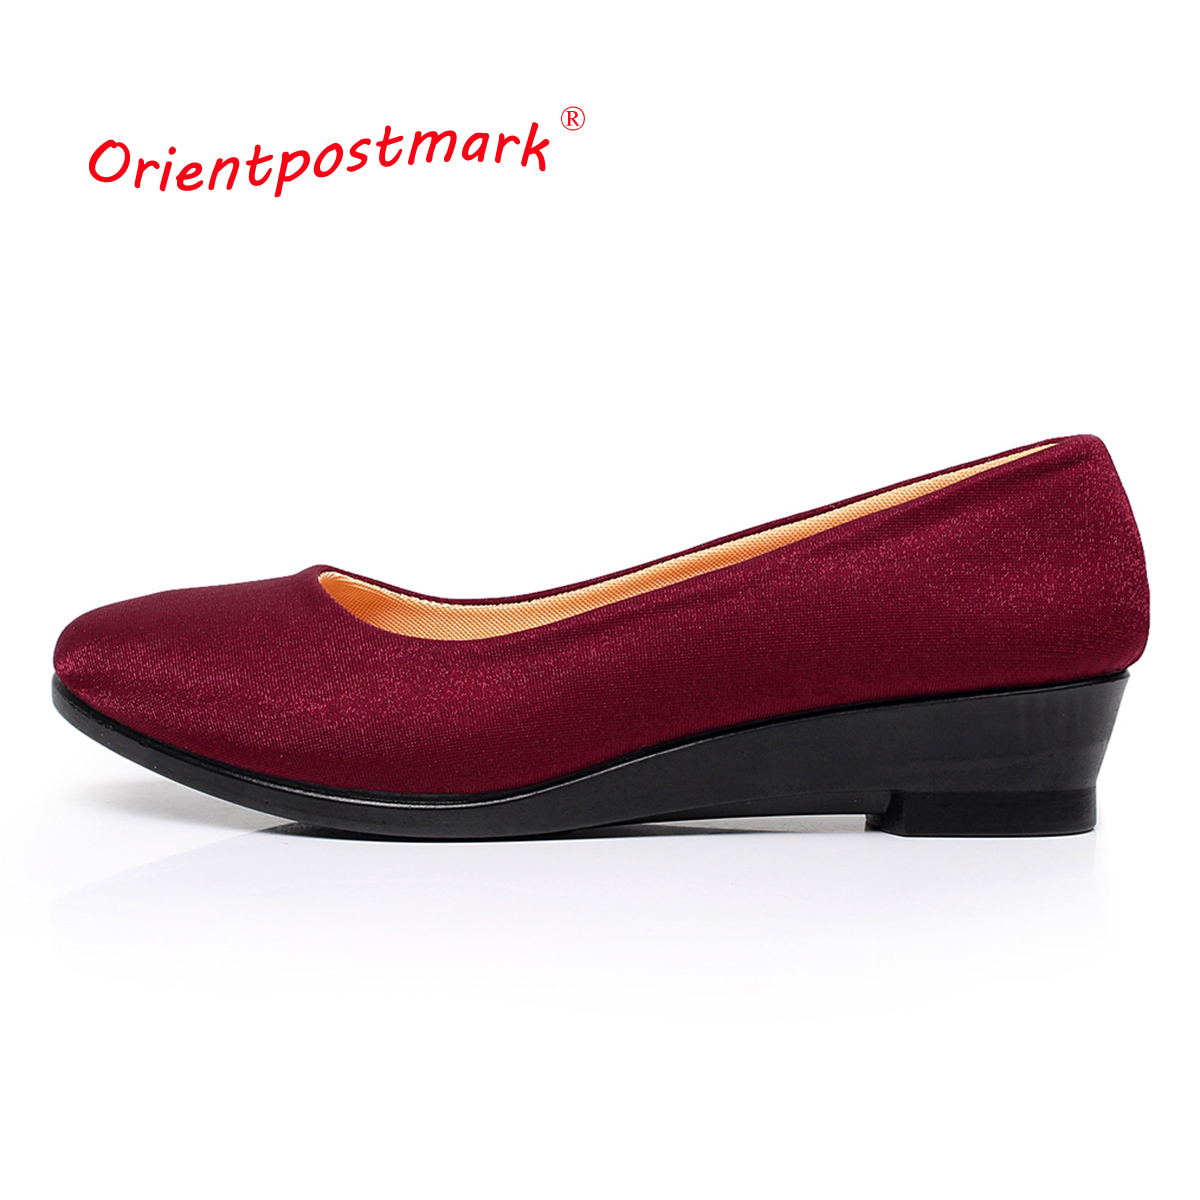 Women Wedges Shoes Women Shoes For Work Cloth Wedges Sweet Loafers Slip On Women's Pregnant Wedges Shoes Oversize Boat Shoes